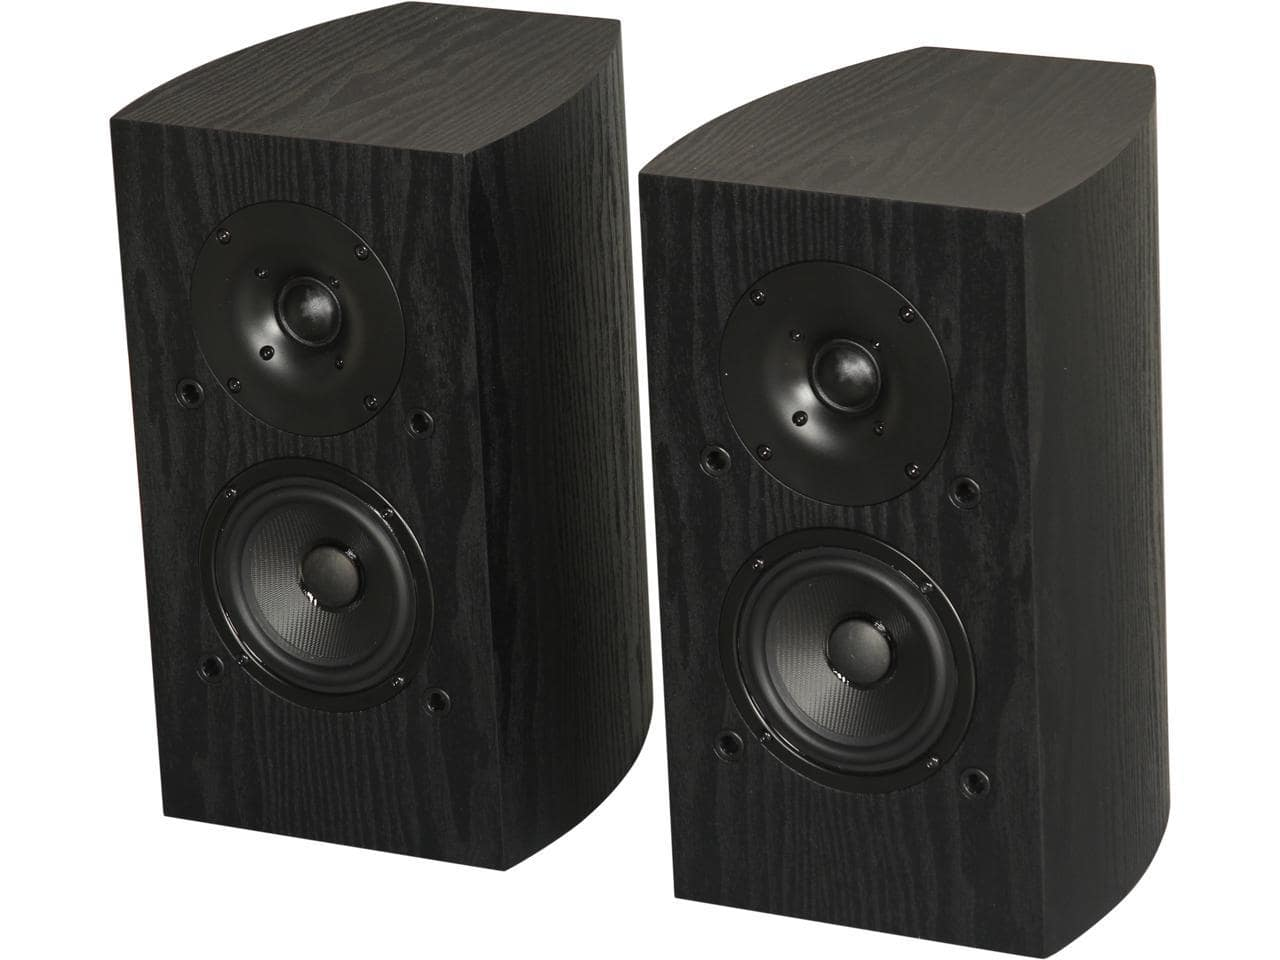 Pioneer SP-BS22-LR Andrew Jones Designed Bookshelf Loudspeakers (Pair) (Like New)-$79.00 Shipped